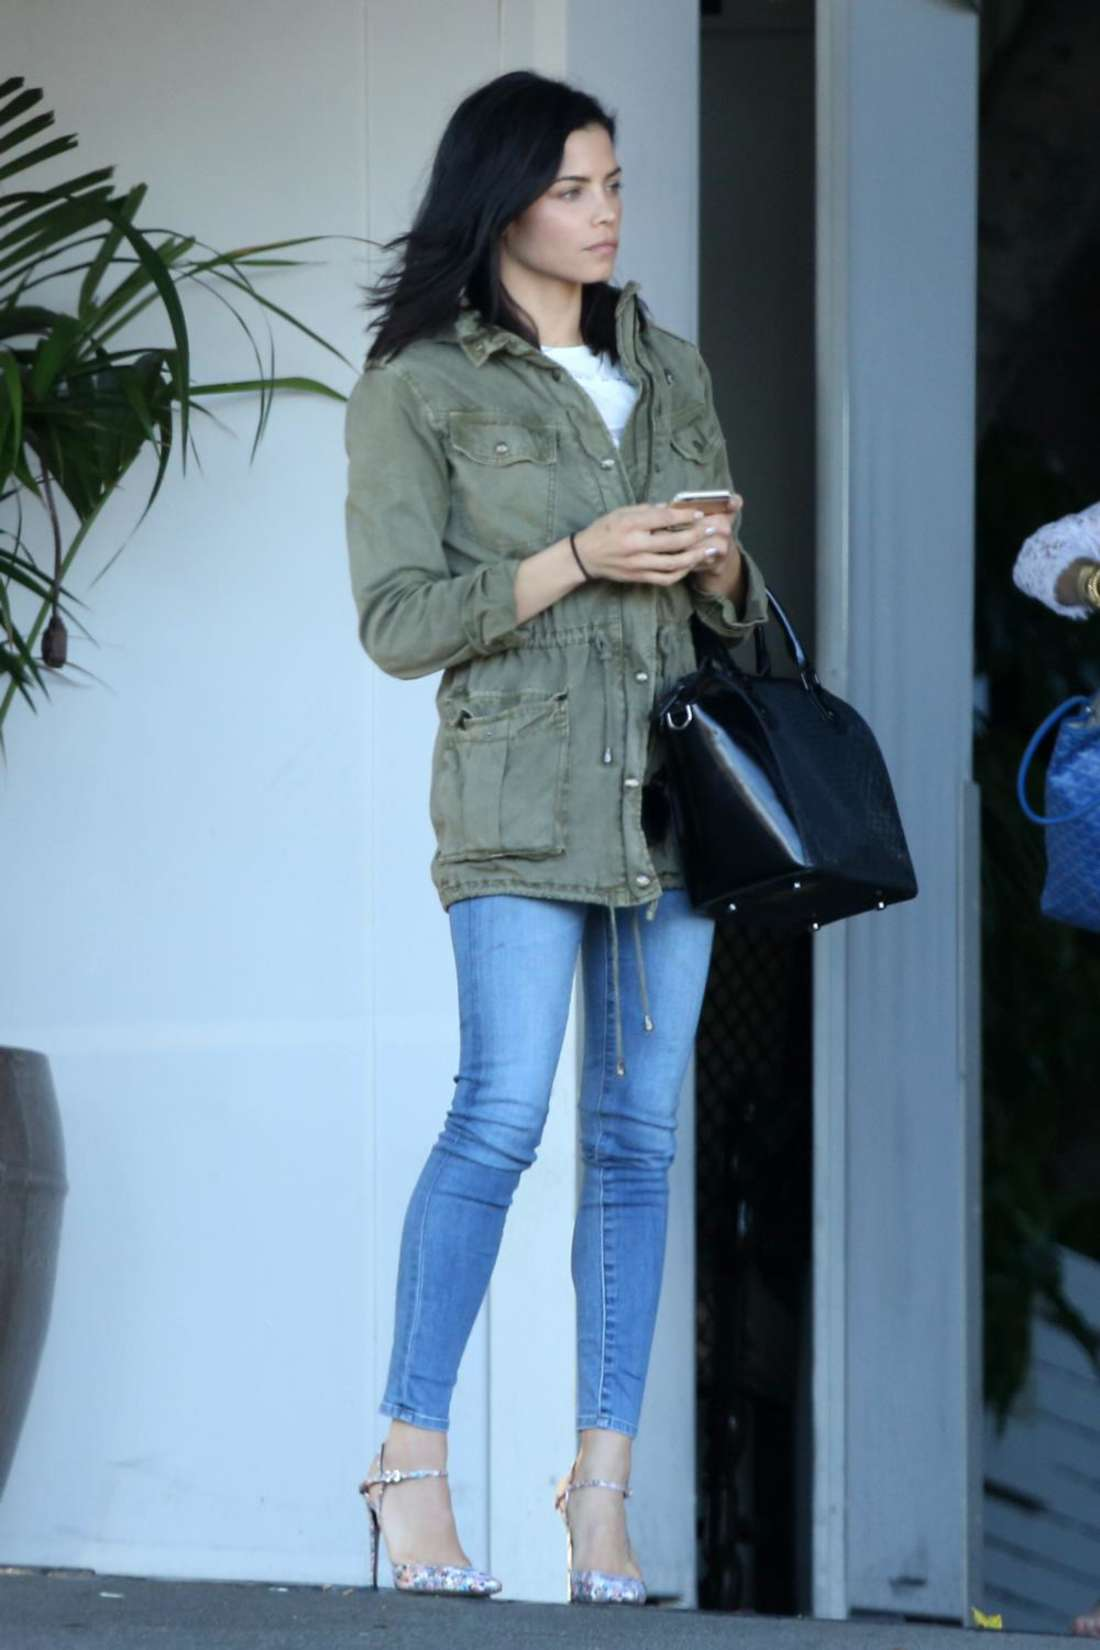 Jenna Dewan Tatum in Skinny Jeans at Chateau Marmont in Hollywood